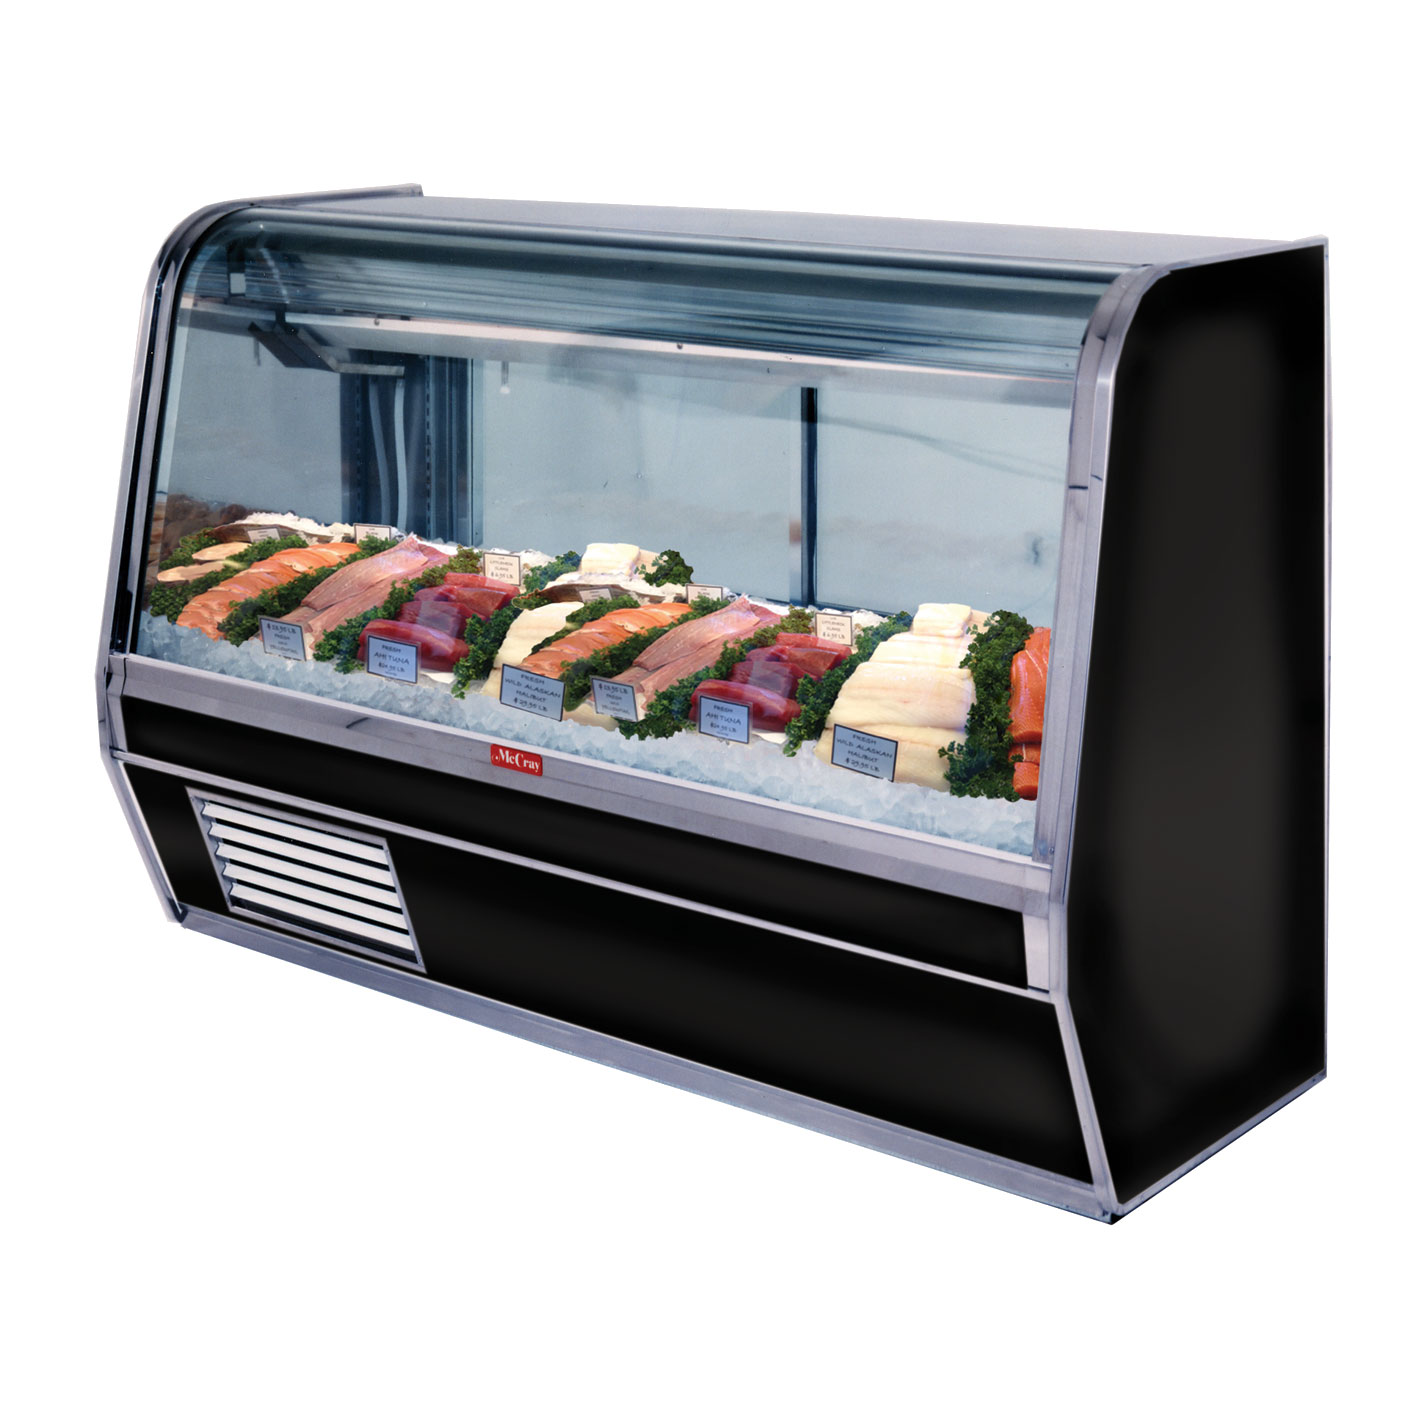 Howard-McCray R-CFS32E-6C-BE-LED display case, deli seafood / poultry